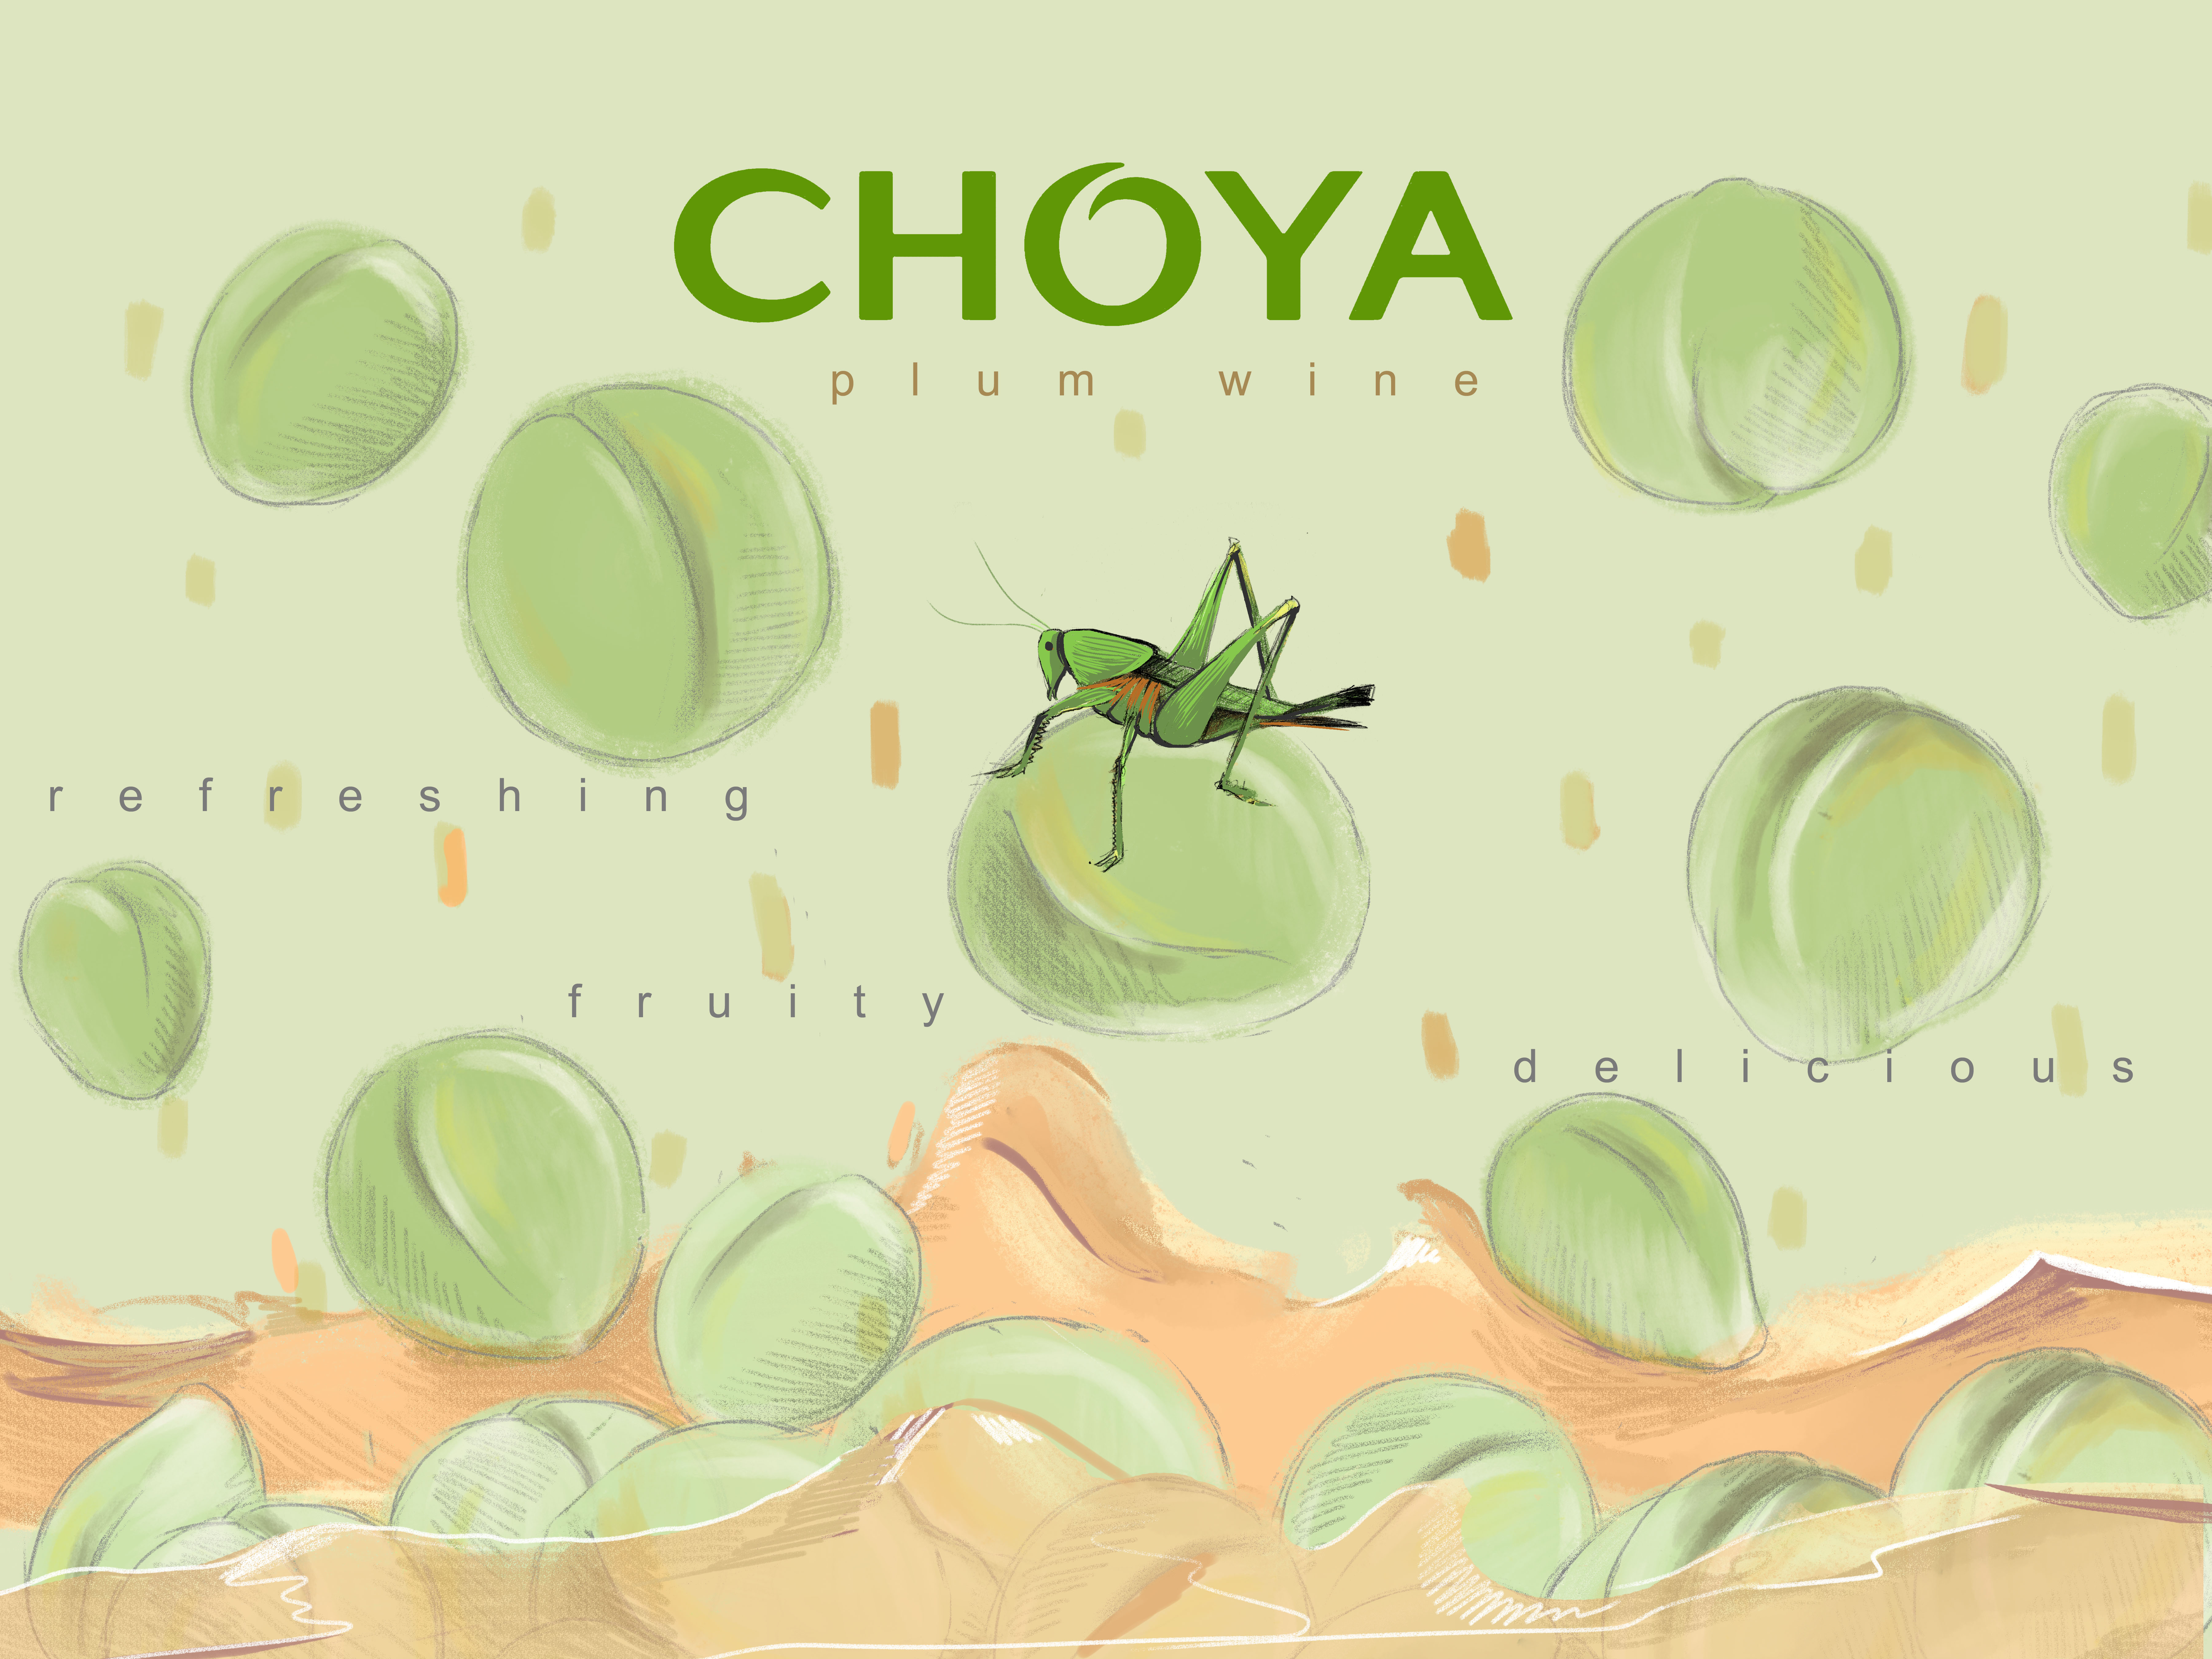 Choya Plum WIne